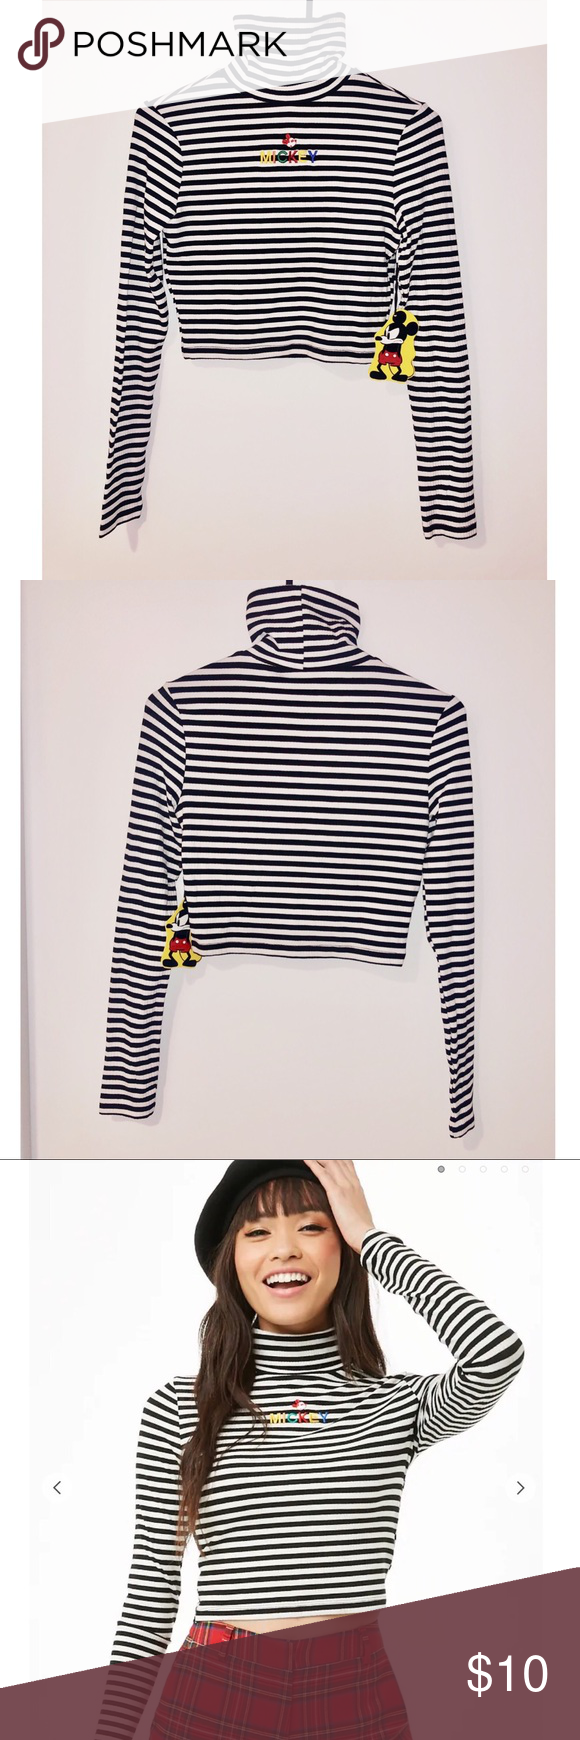 248ff6916cb NWT Mickey Mouse Striped Crop Top Turtle Neck From the special Forever 21 x  Disney collection